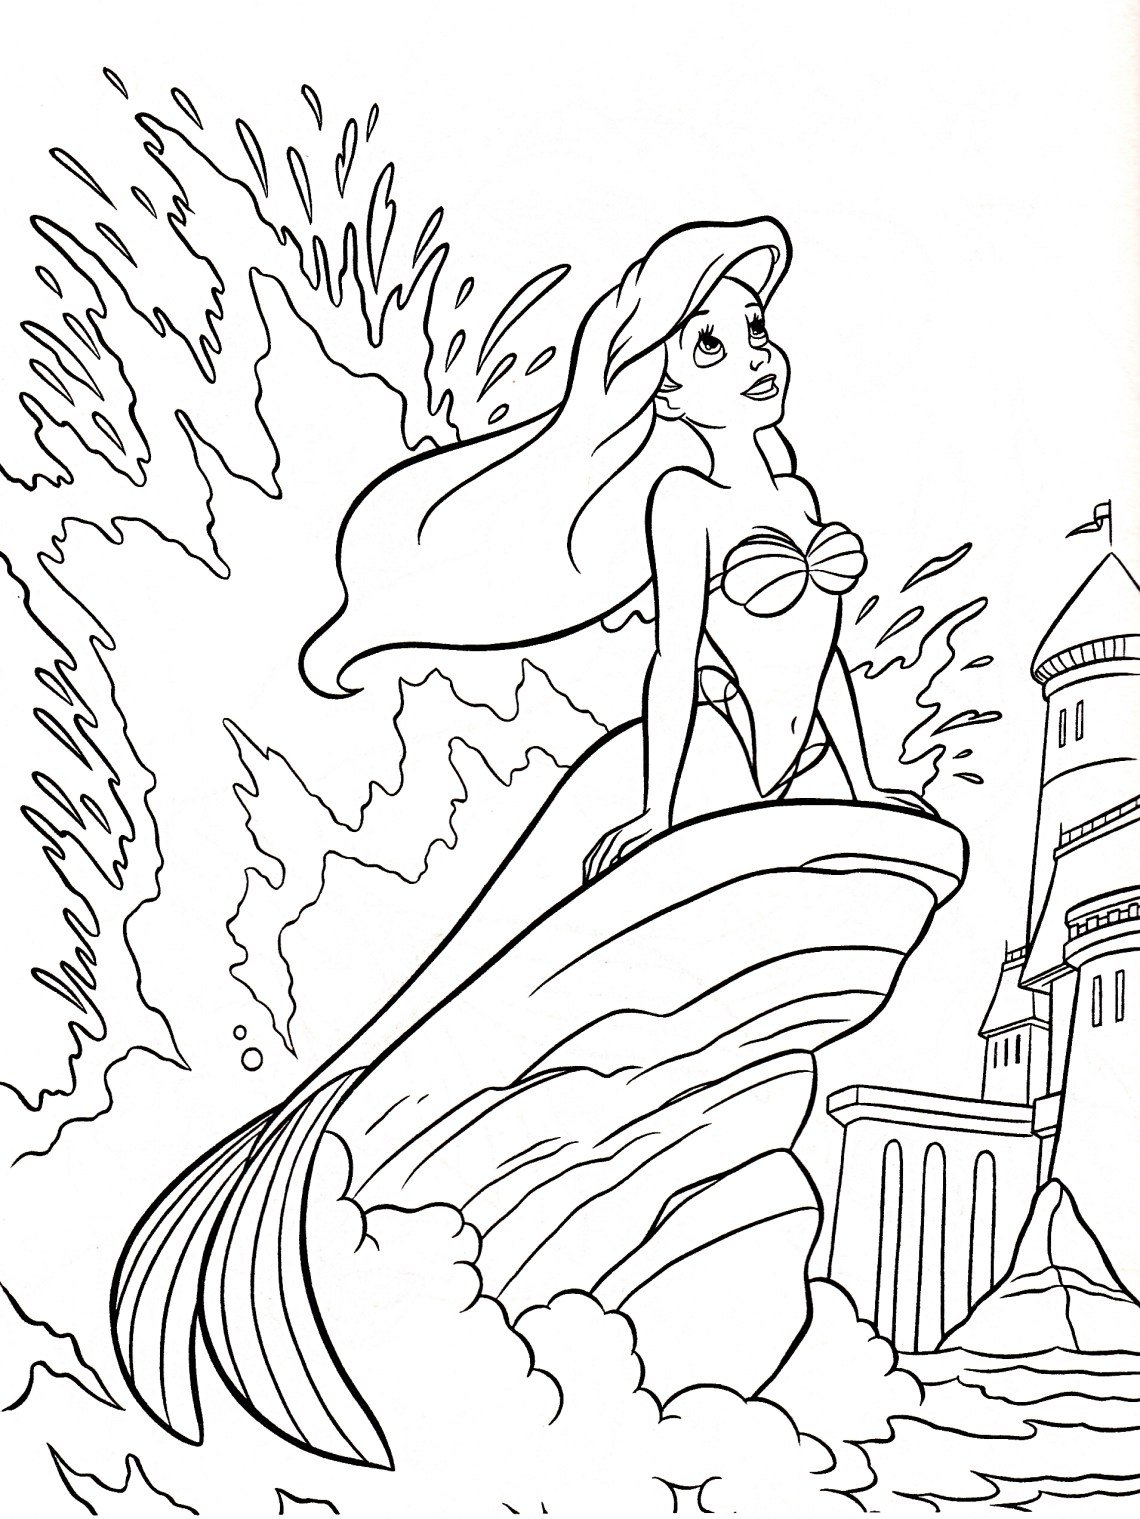 Walt Disney World Coloring Pages Gallery | Free Coloring ... | colouring pages disney